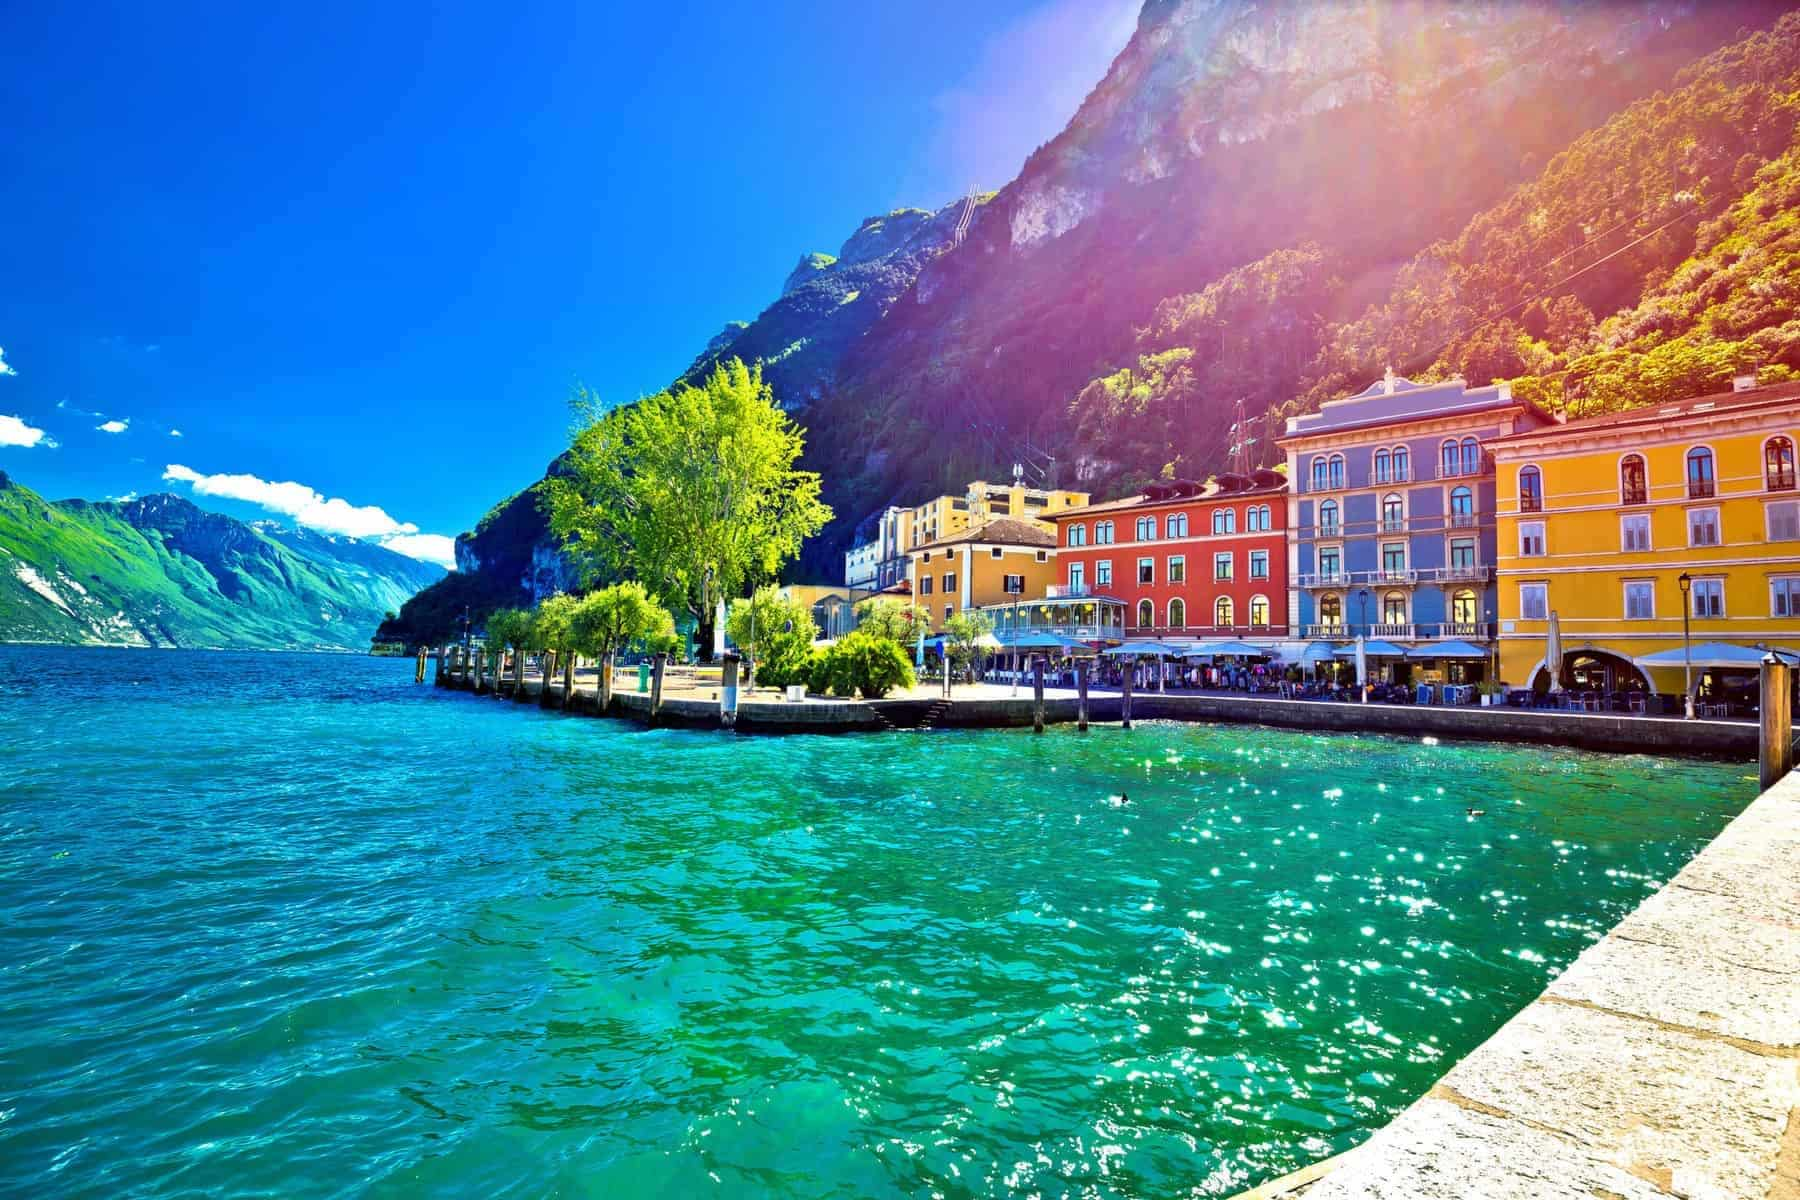 Riva del Garda waterfront view at sunset, Lago di Gada, Trentino Alto Adige region of Italy